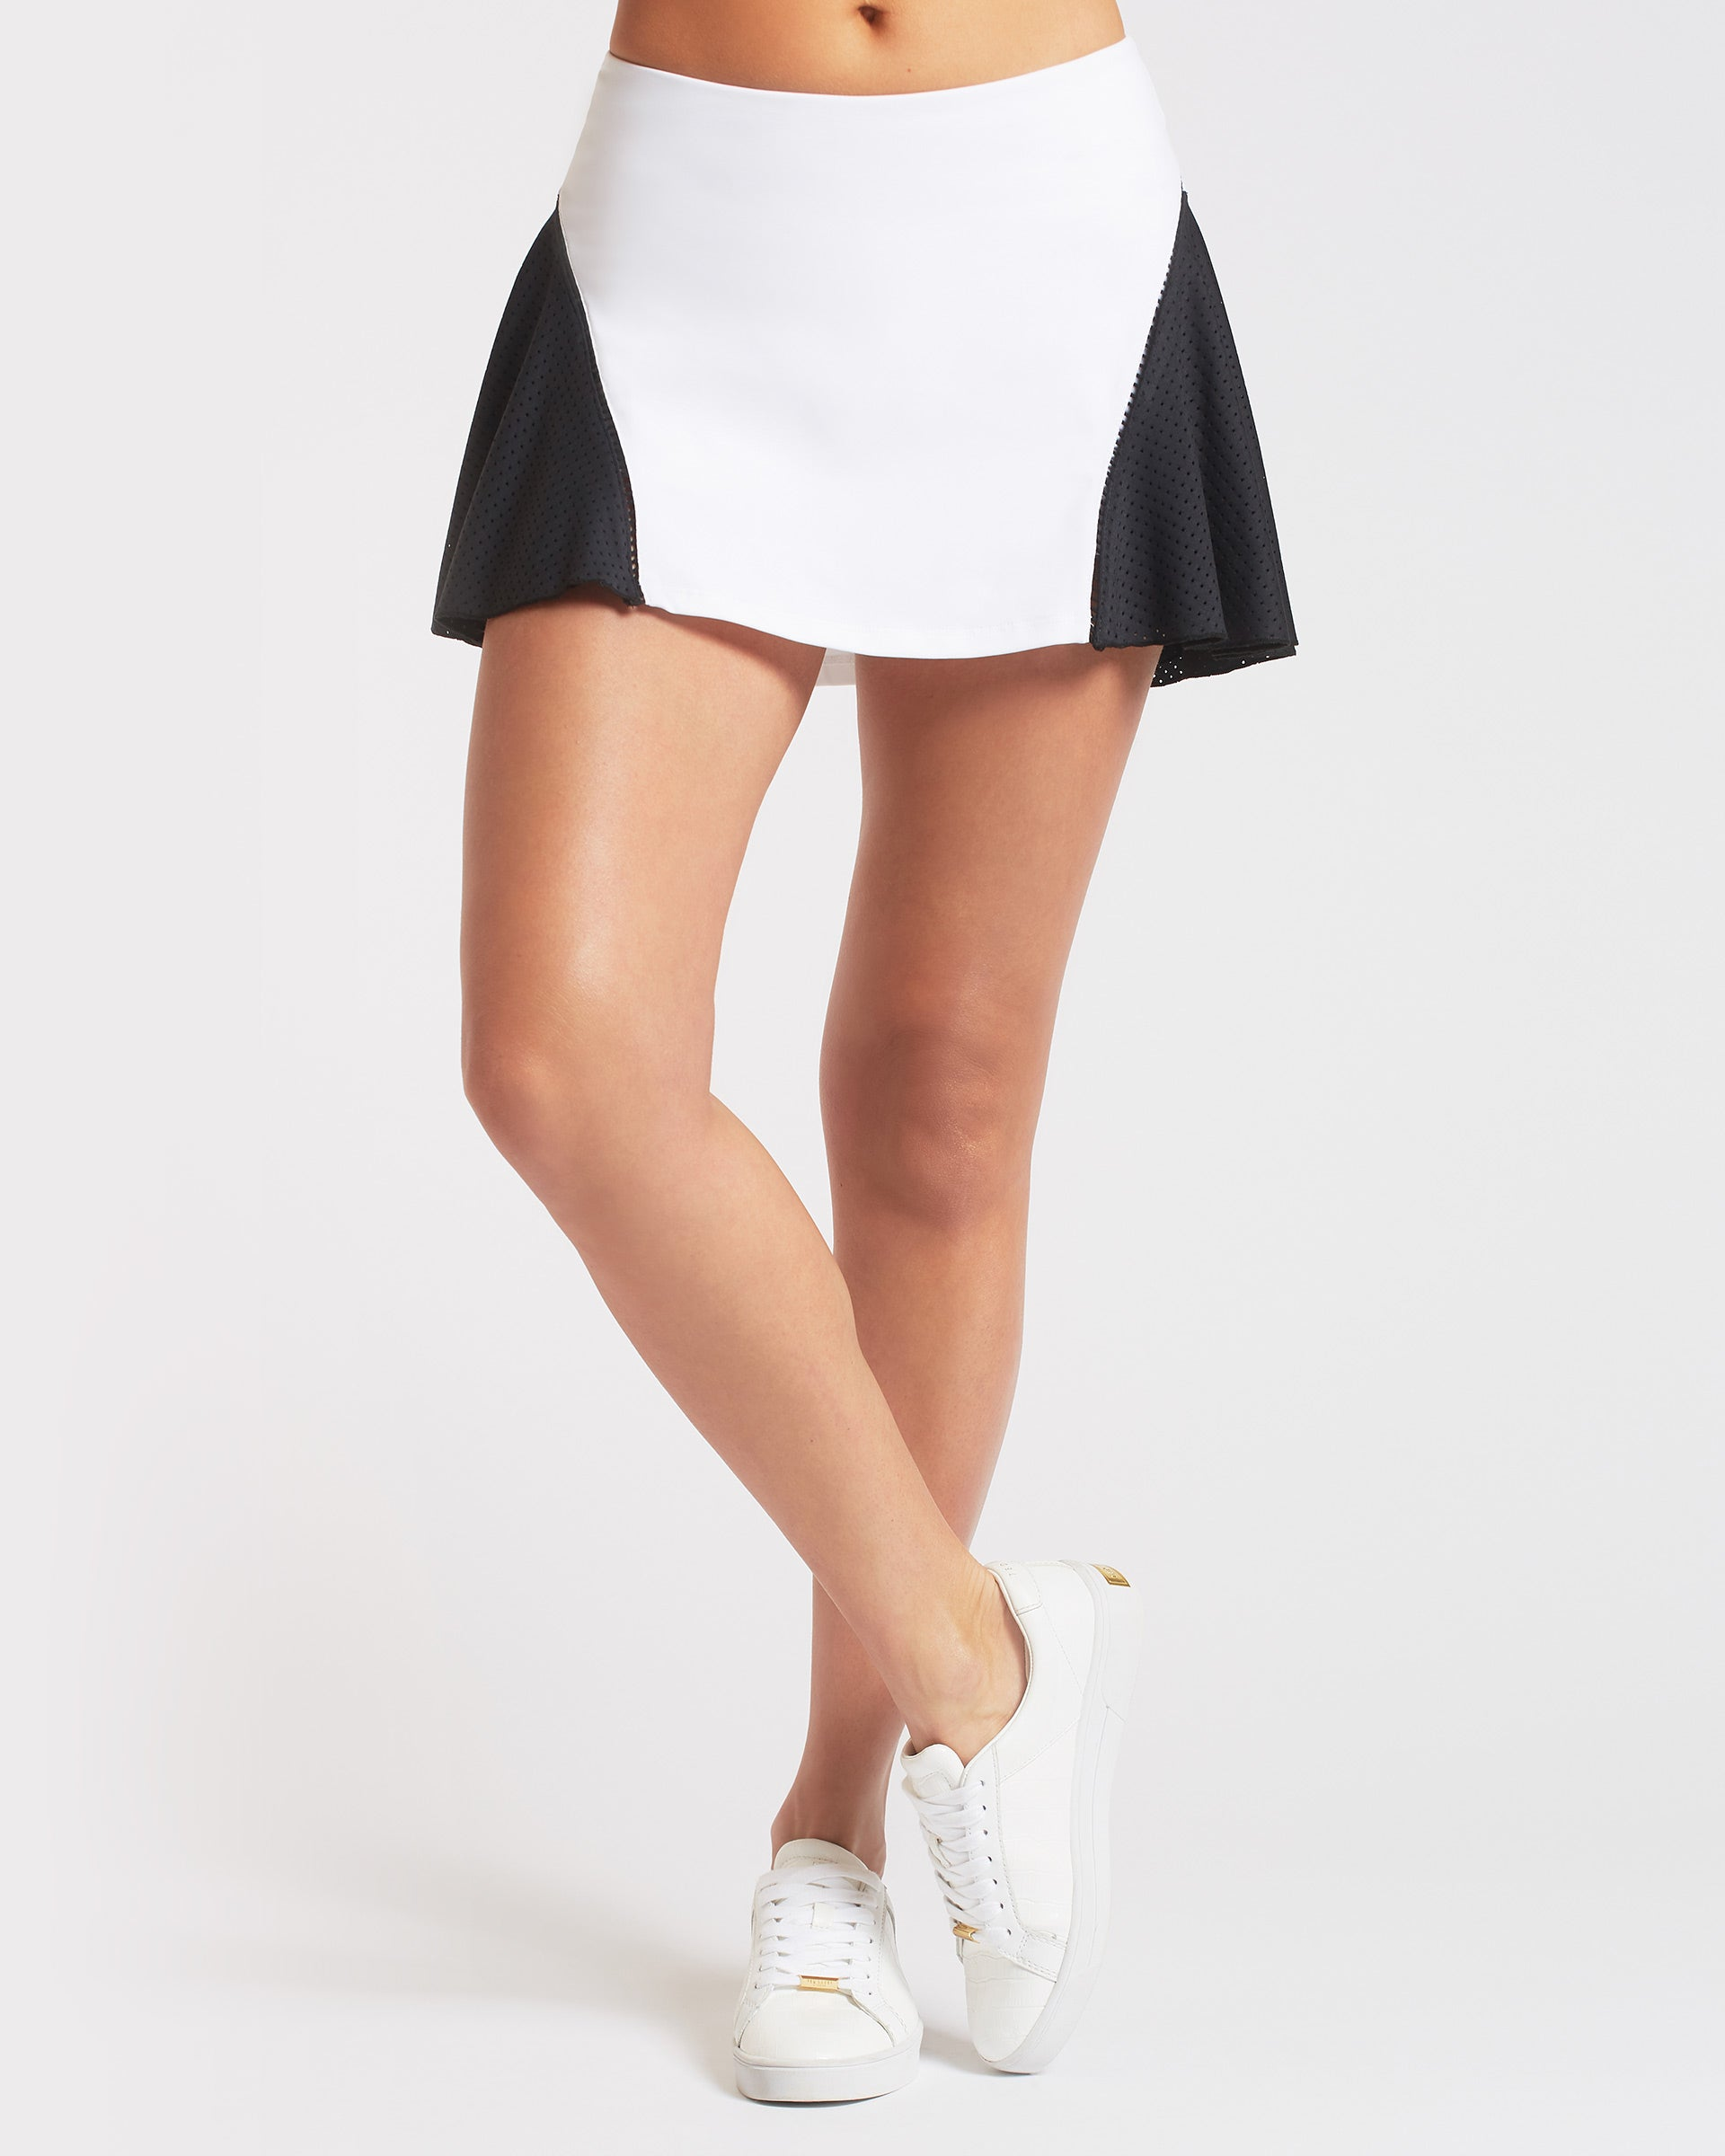 1-love-tennis-skirt-white-black